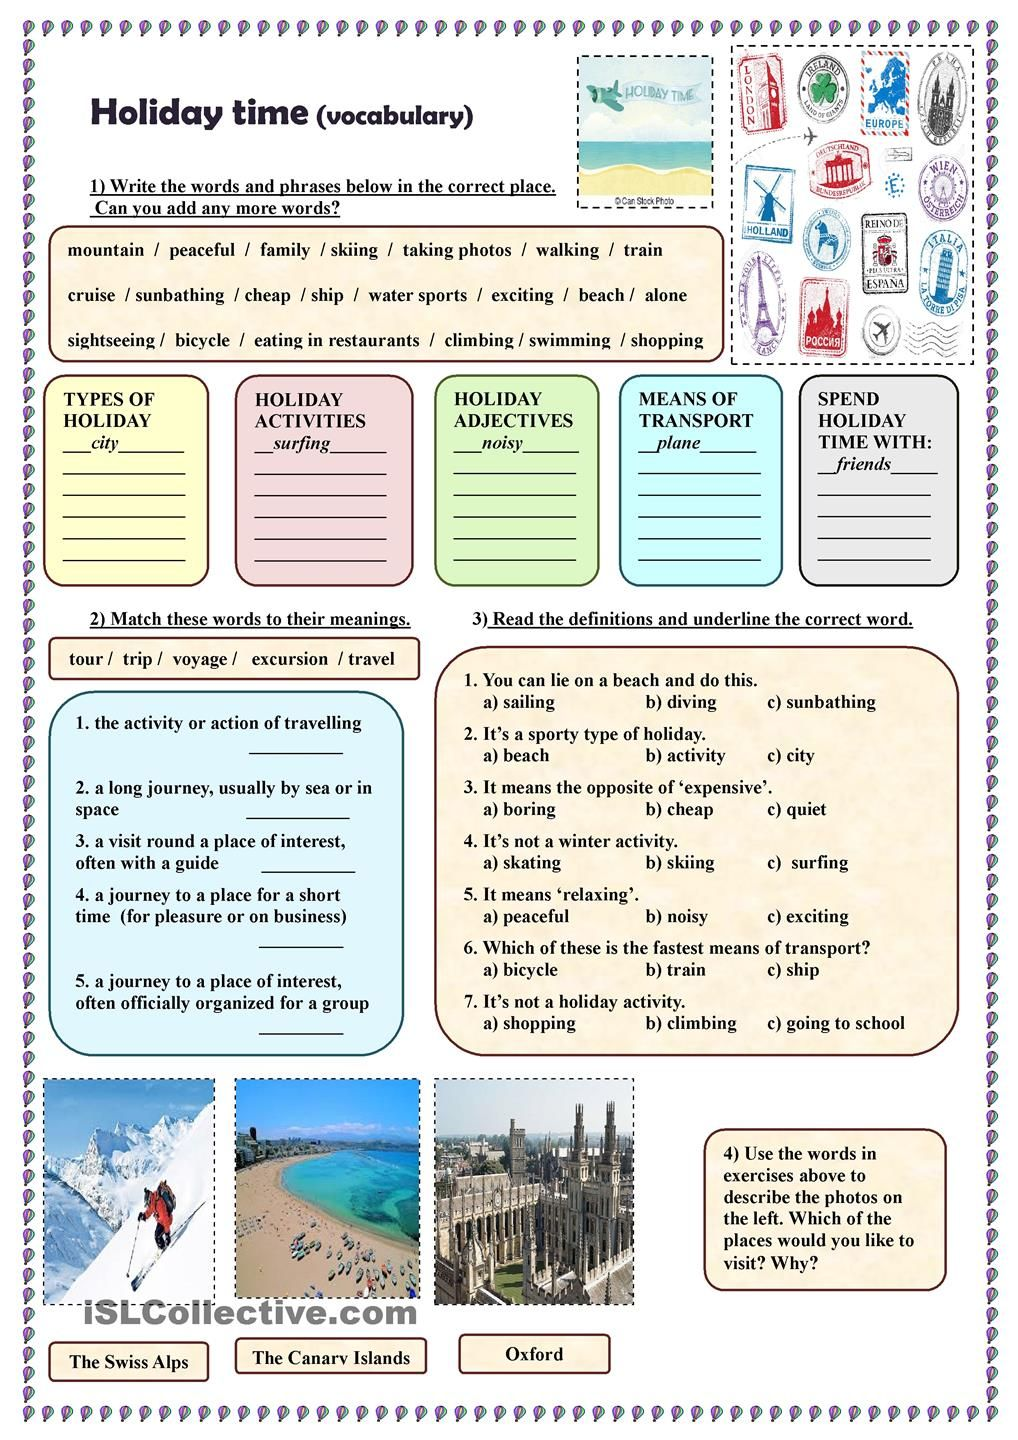 Holiday time (vocabulary) | ESL worksheets of the day | Pinterest ...